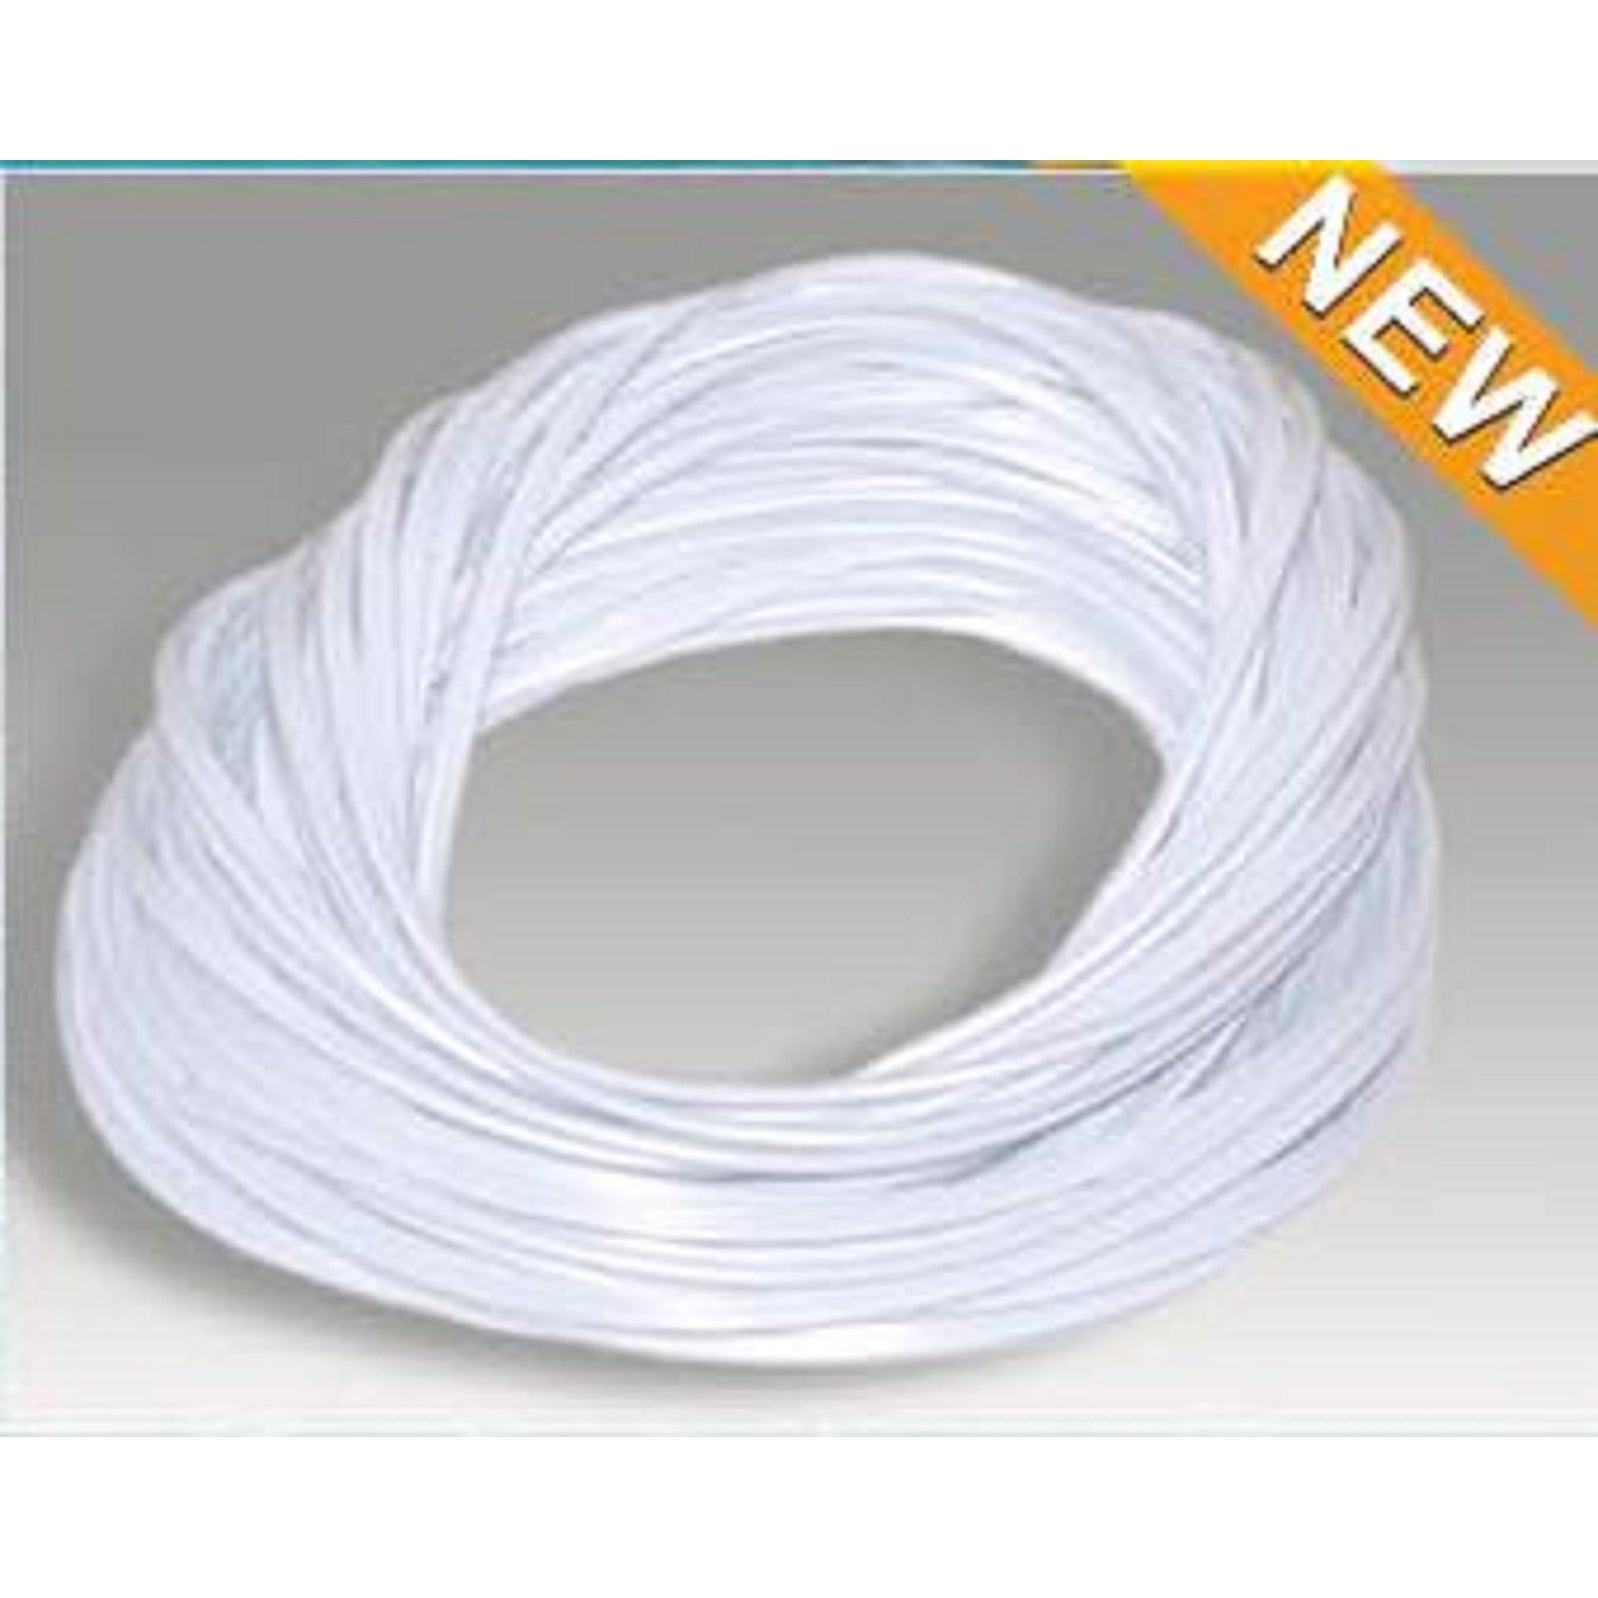 120' White Weather Resistant Foot Roll Swimming Pool and Spa Bead Lock Accessory - N/A